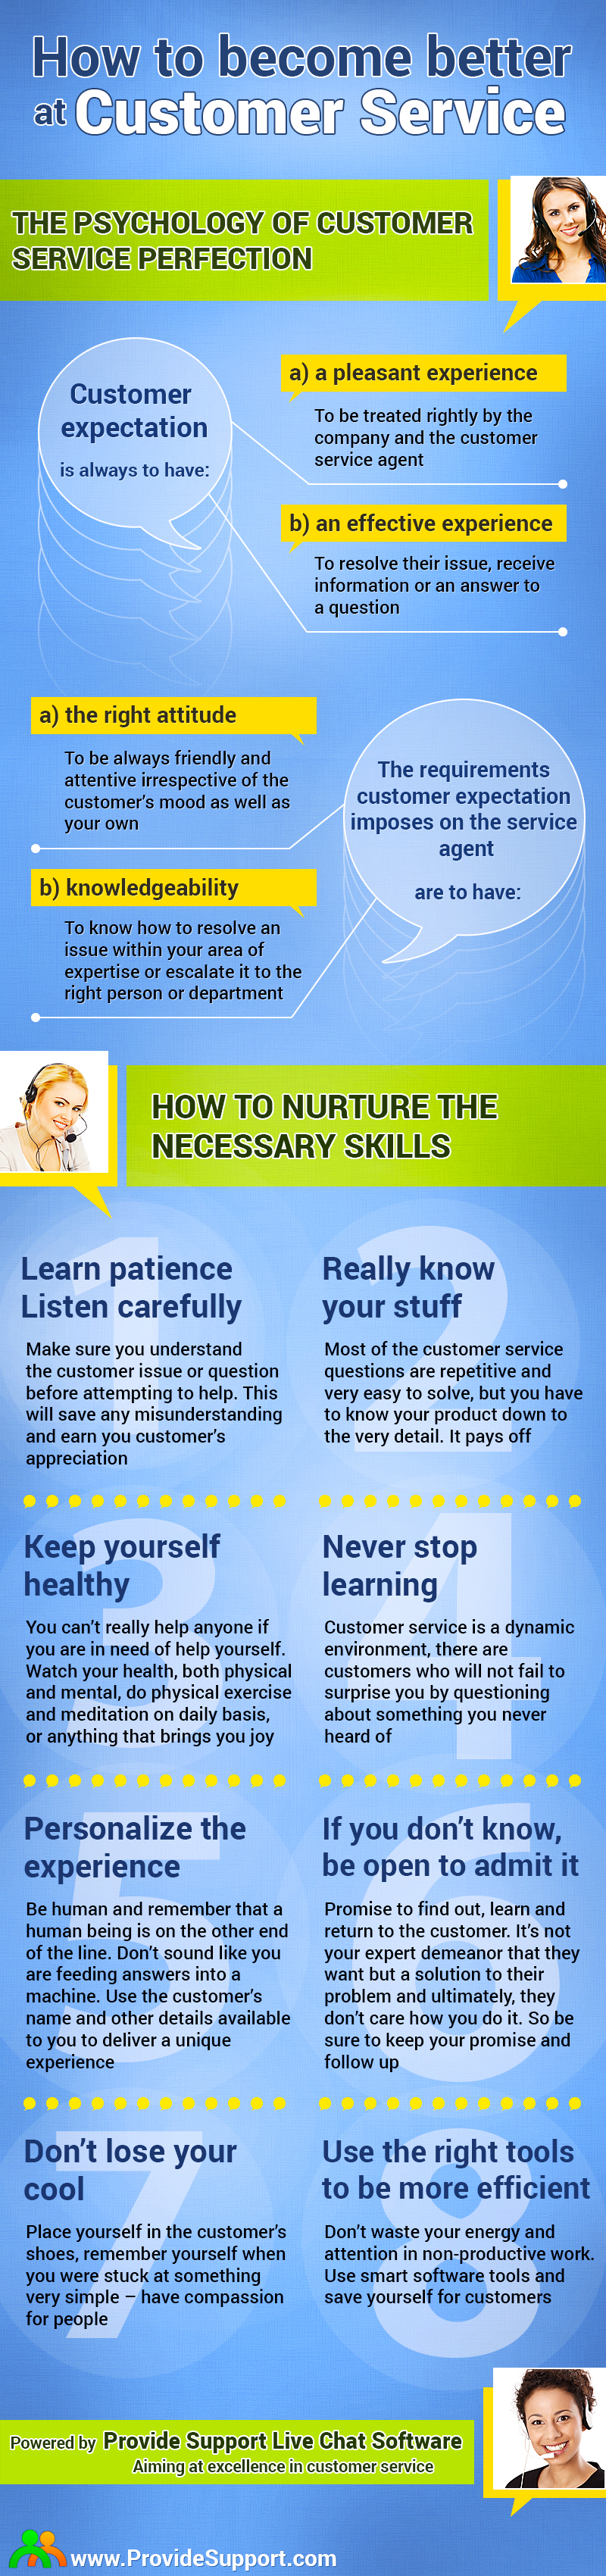 How to become better at customer service [inforgraphics]